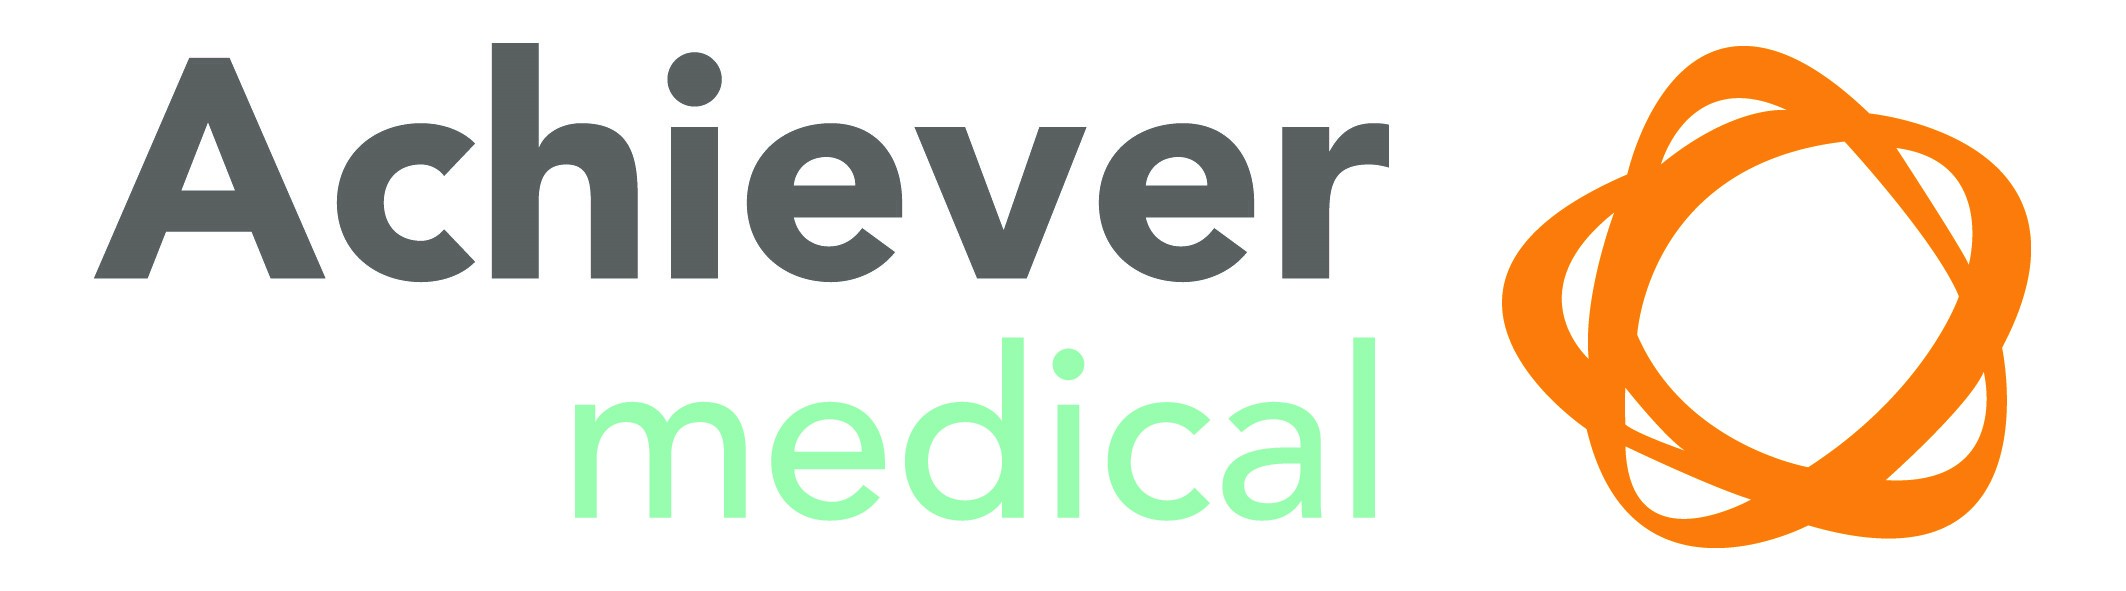 Achiever Medical logo